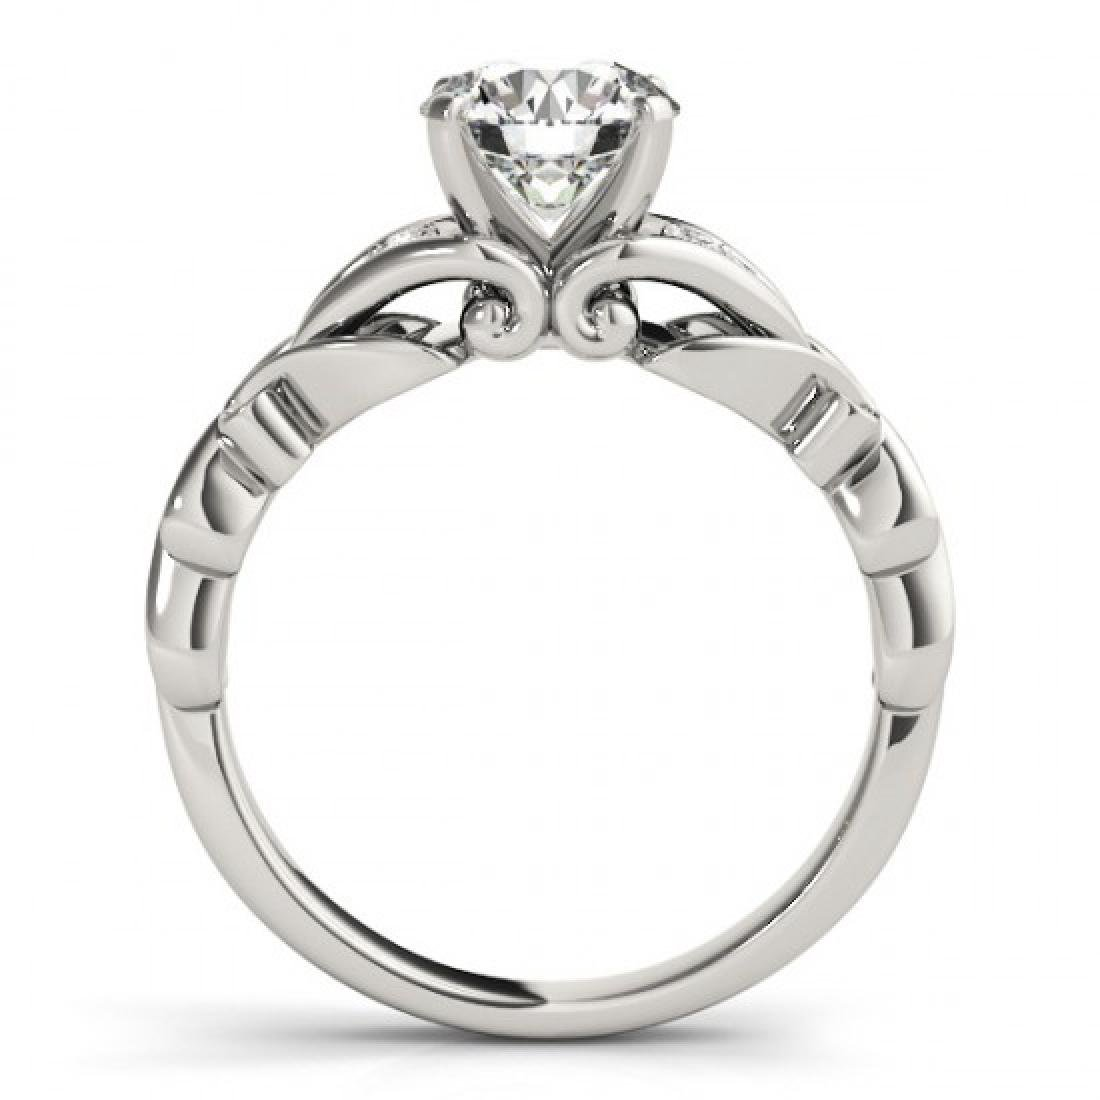 1.35 CTW Certified VS/SI Diamond Solitaire ring 14K - 2